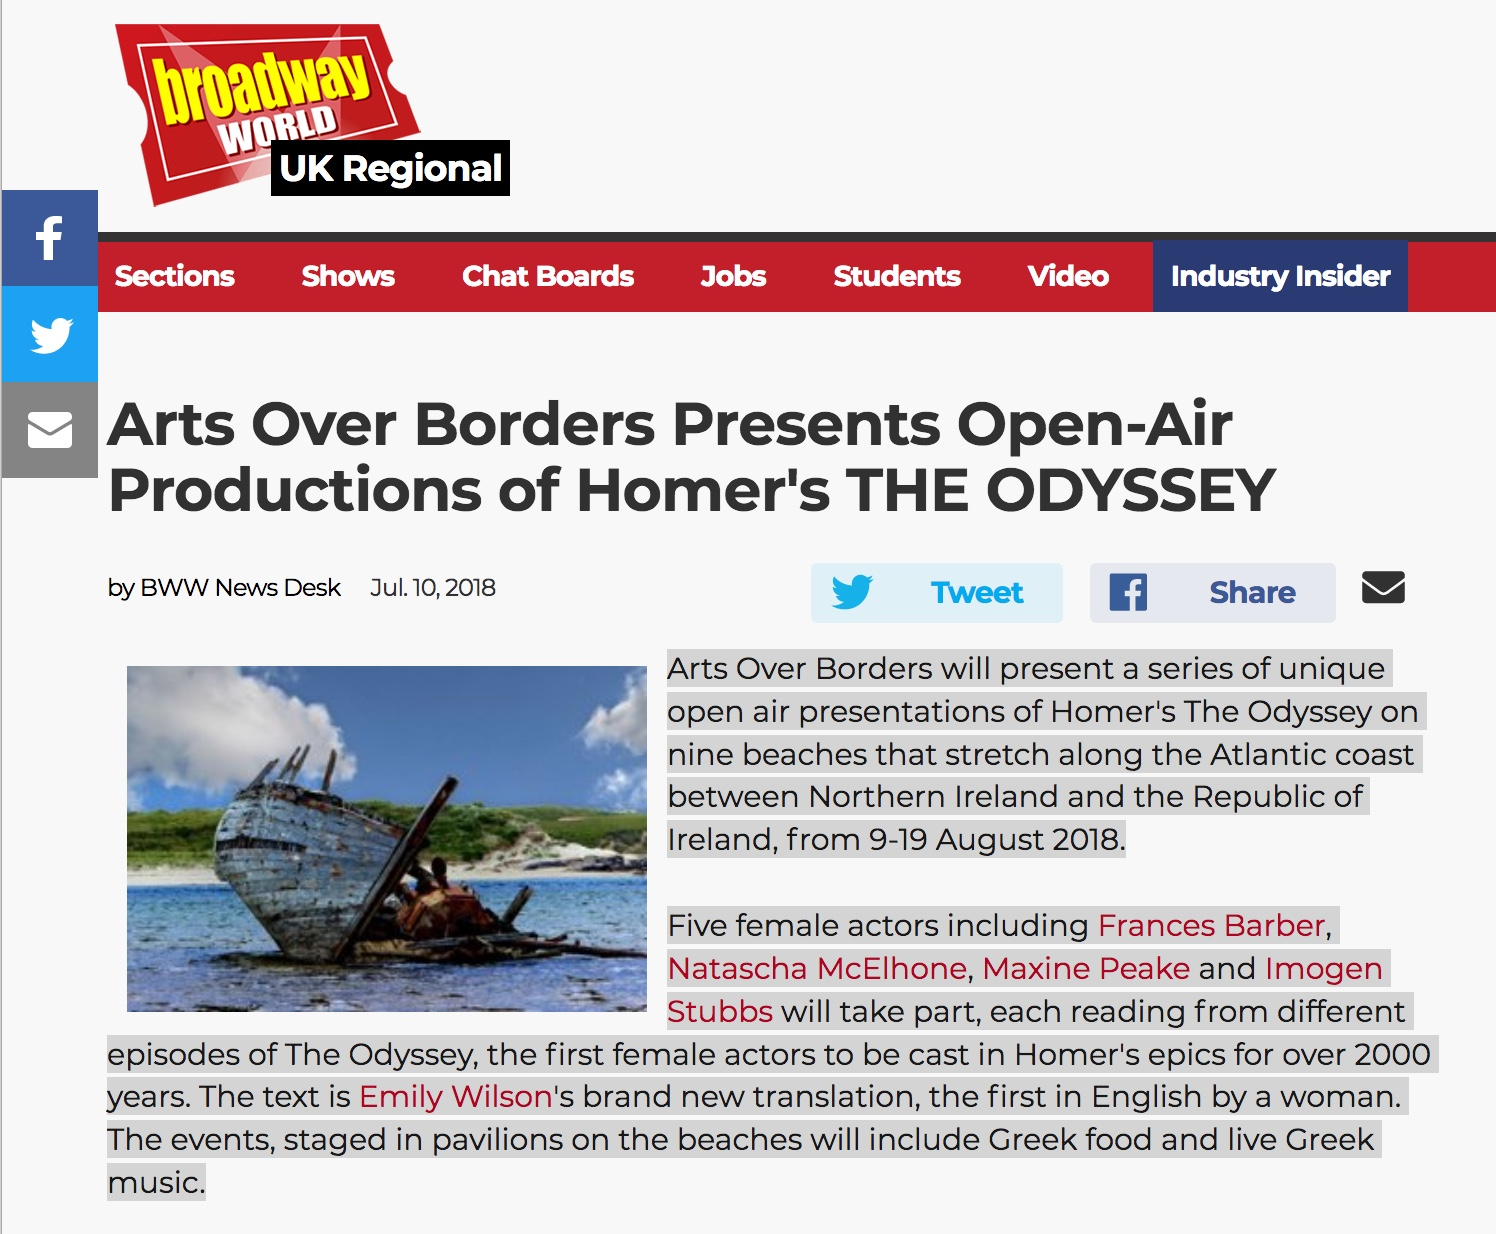 """Broadway World"" – Arts Over Borders Presents Open-Air Productions of Homer's THE ODYSSEY"